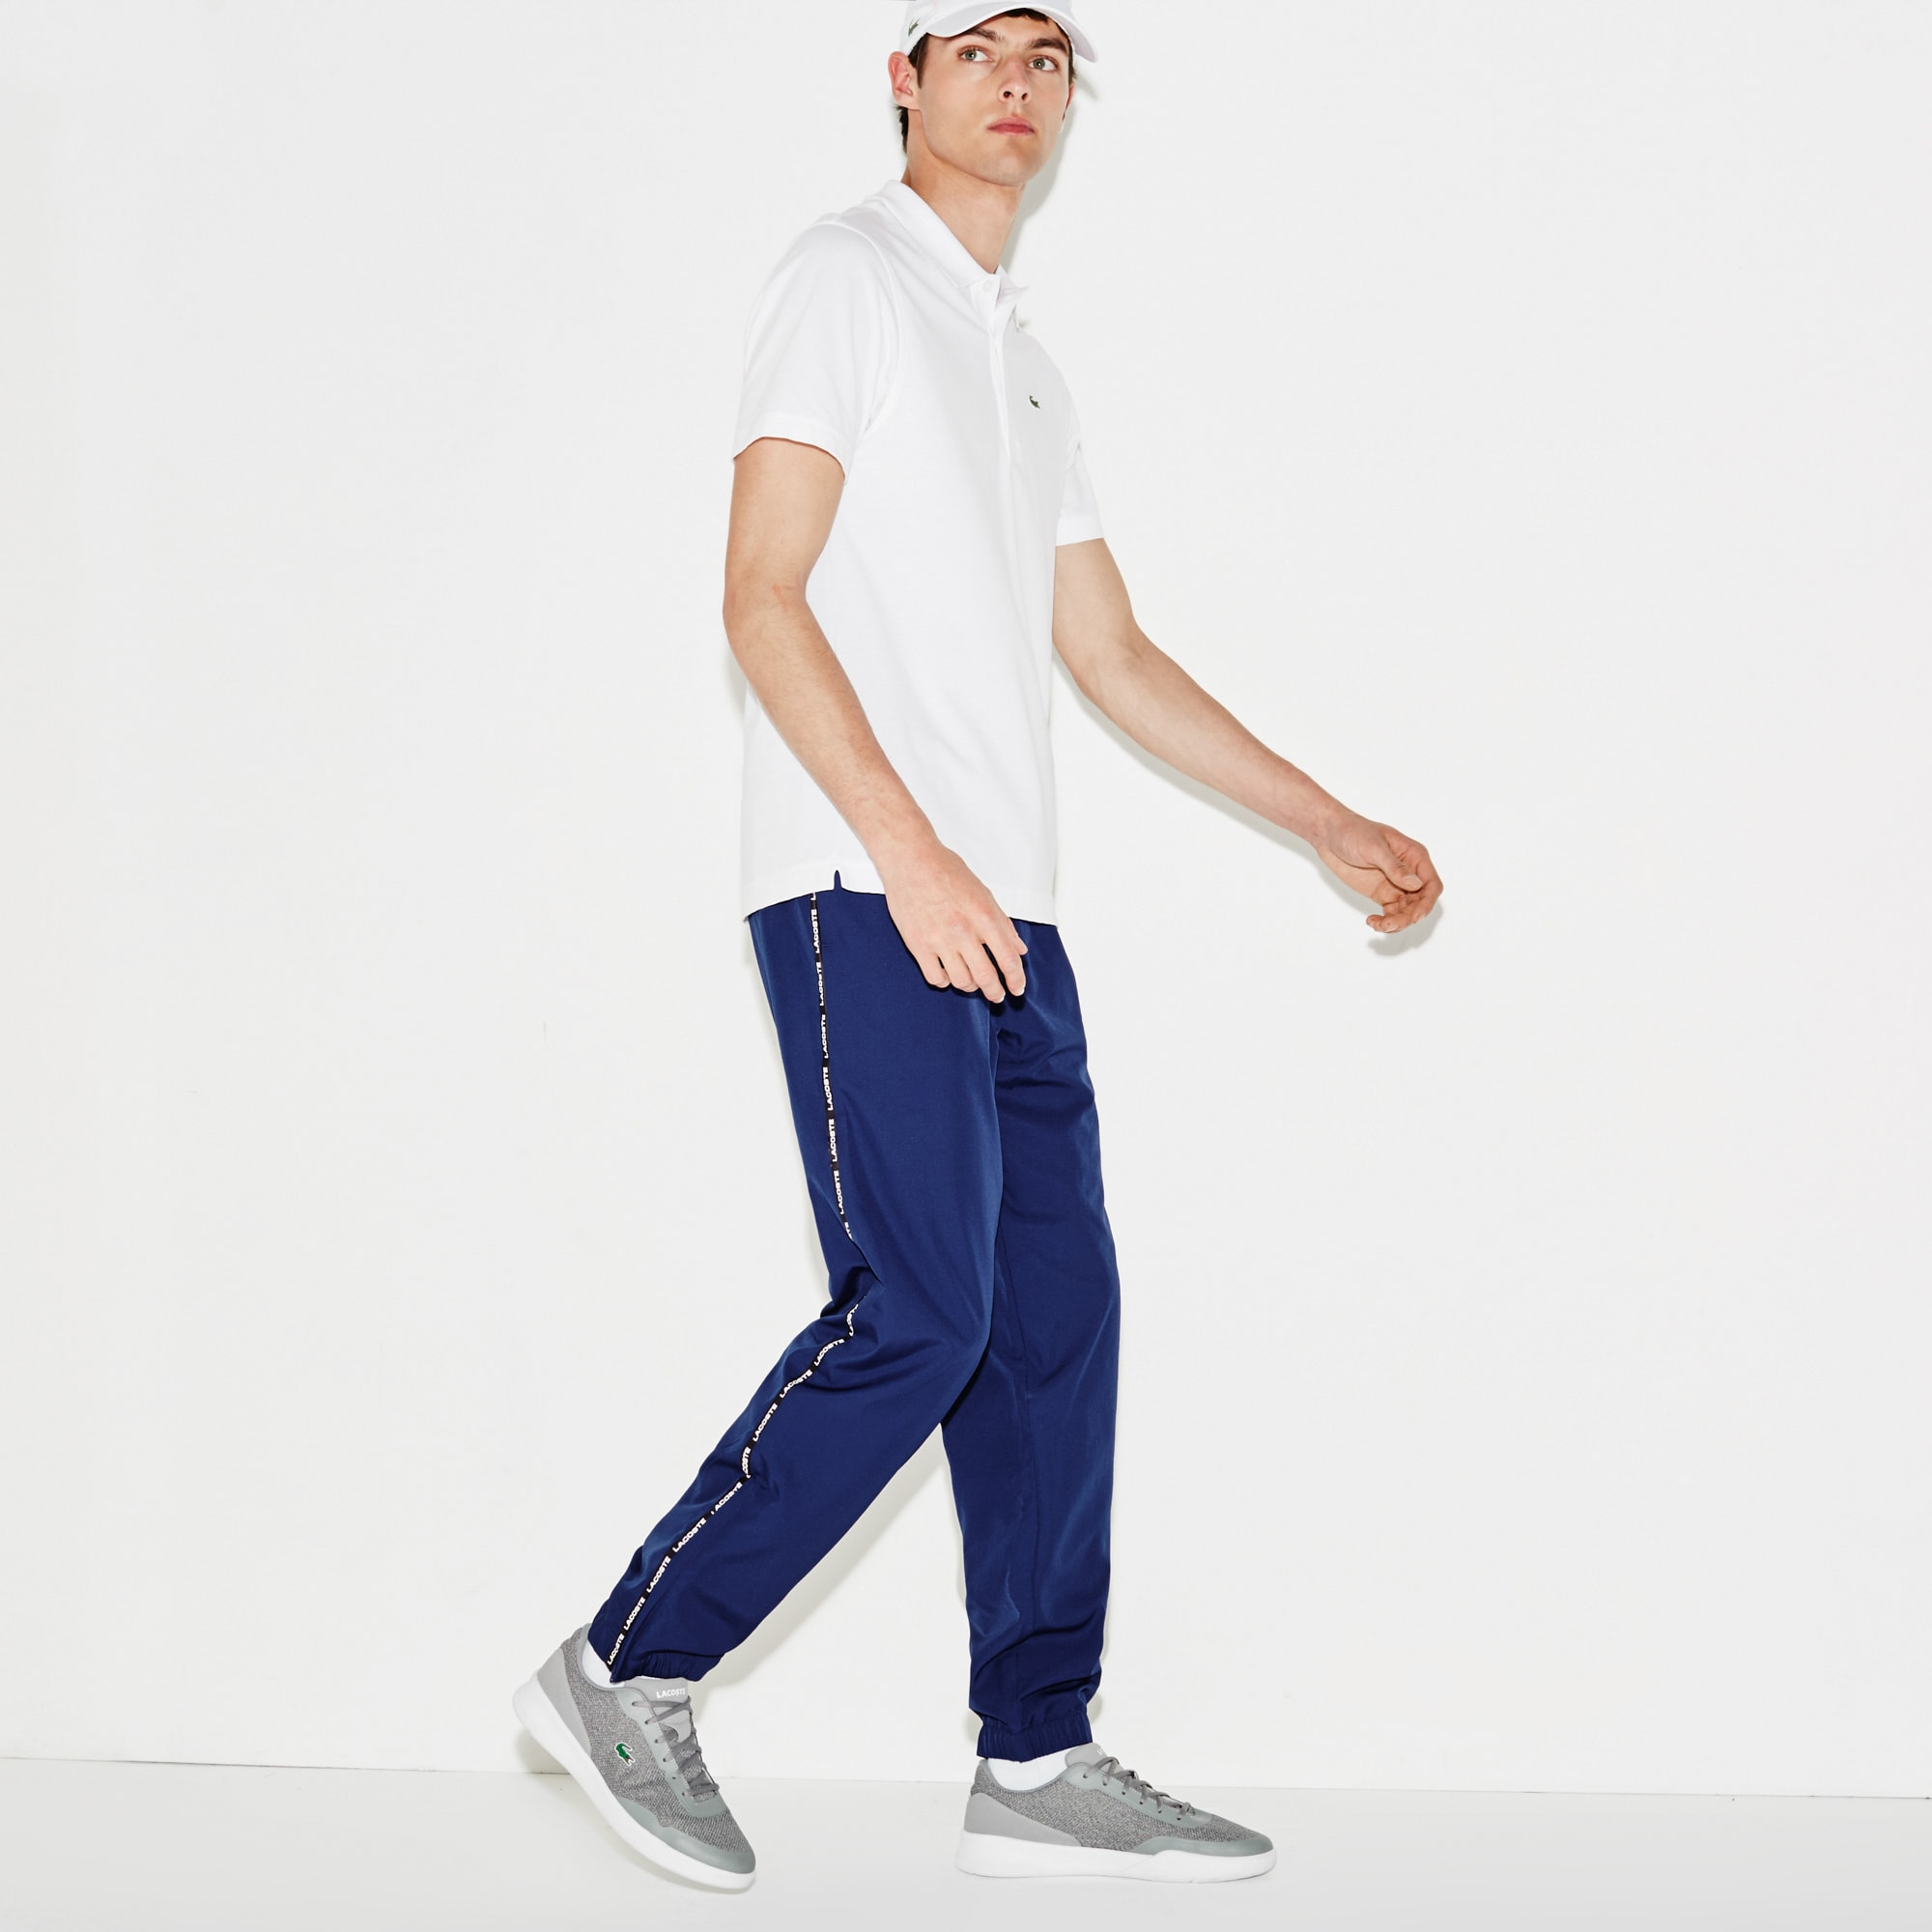 Men's Lacoste SPORT Tennis Contrast Band Sweatpants